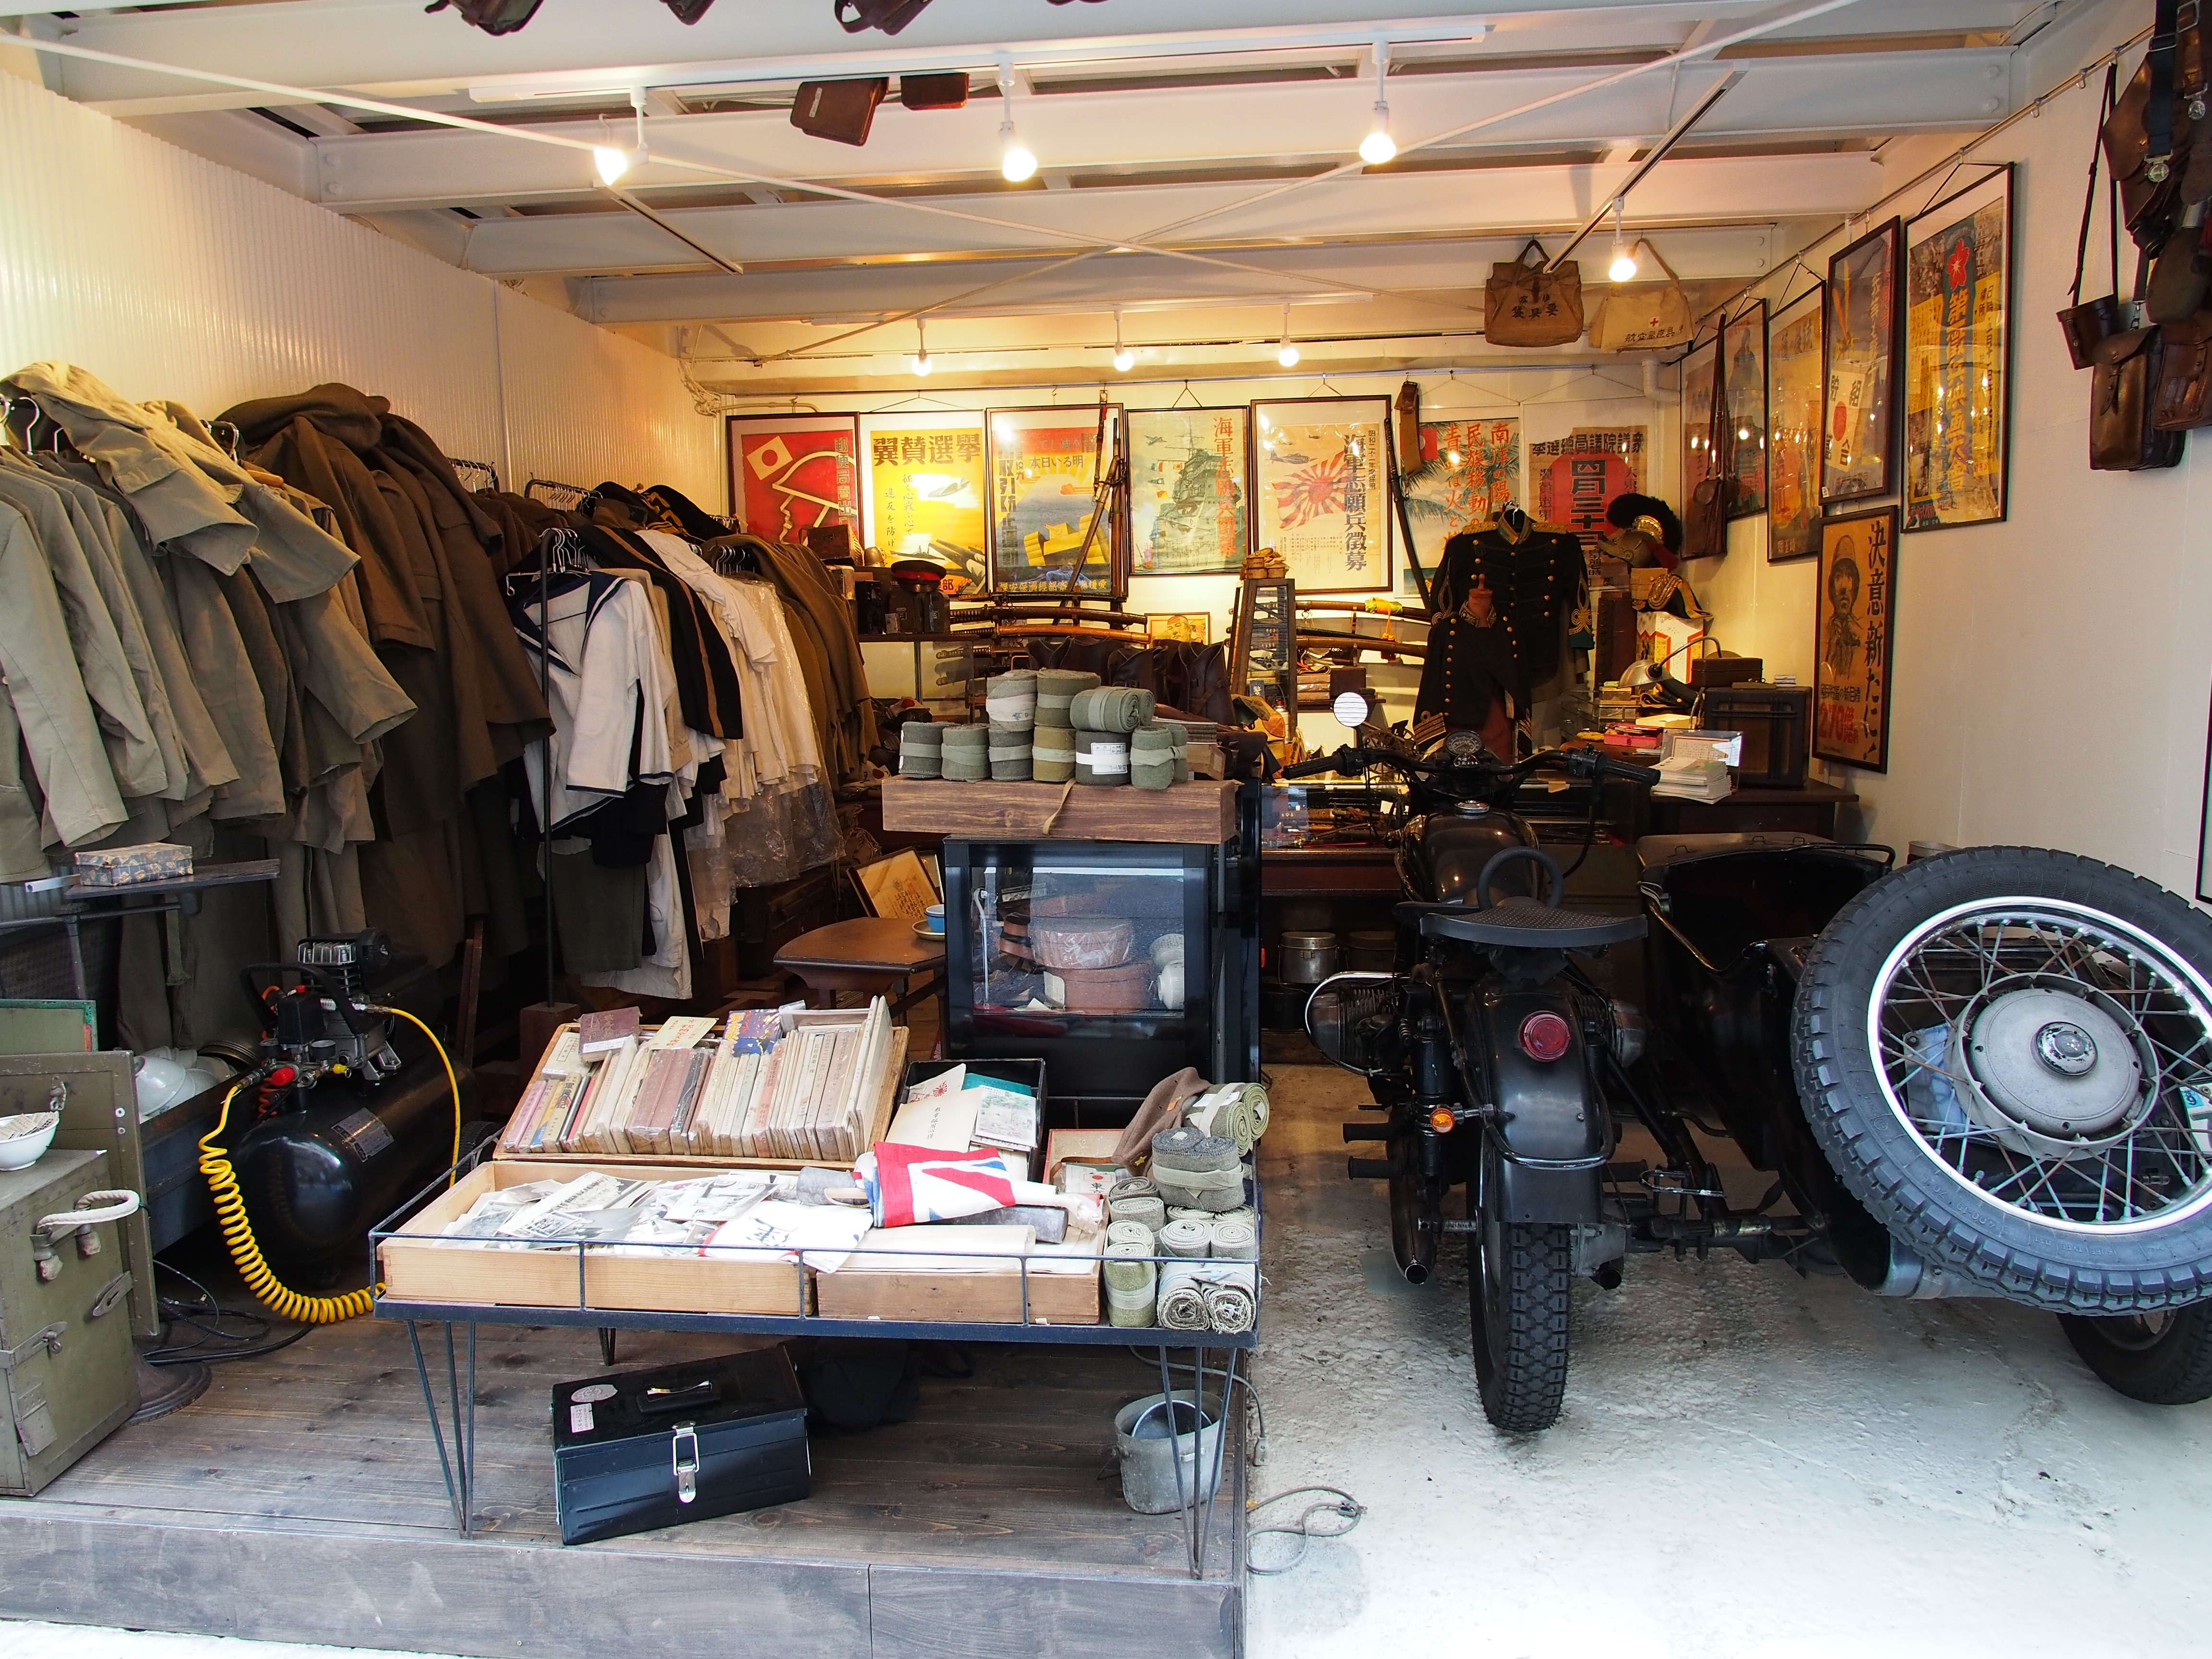 JIMBOUCHO Japanese Military Antiques Shop(old Japan,army,navy,military uniform,Japanese military,Japanese imperial,sword,medal,Japanese army,Japanese navy,etc.)